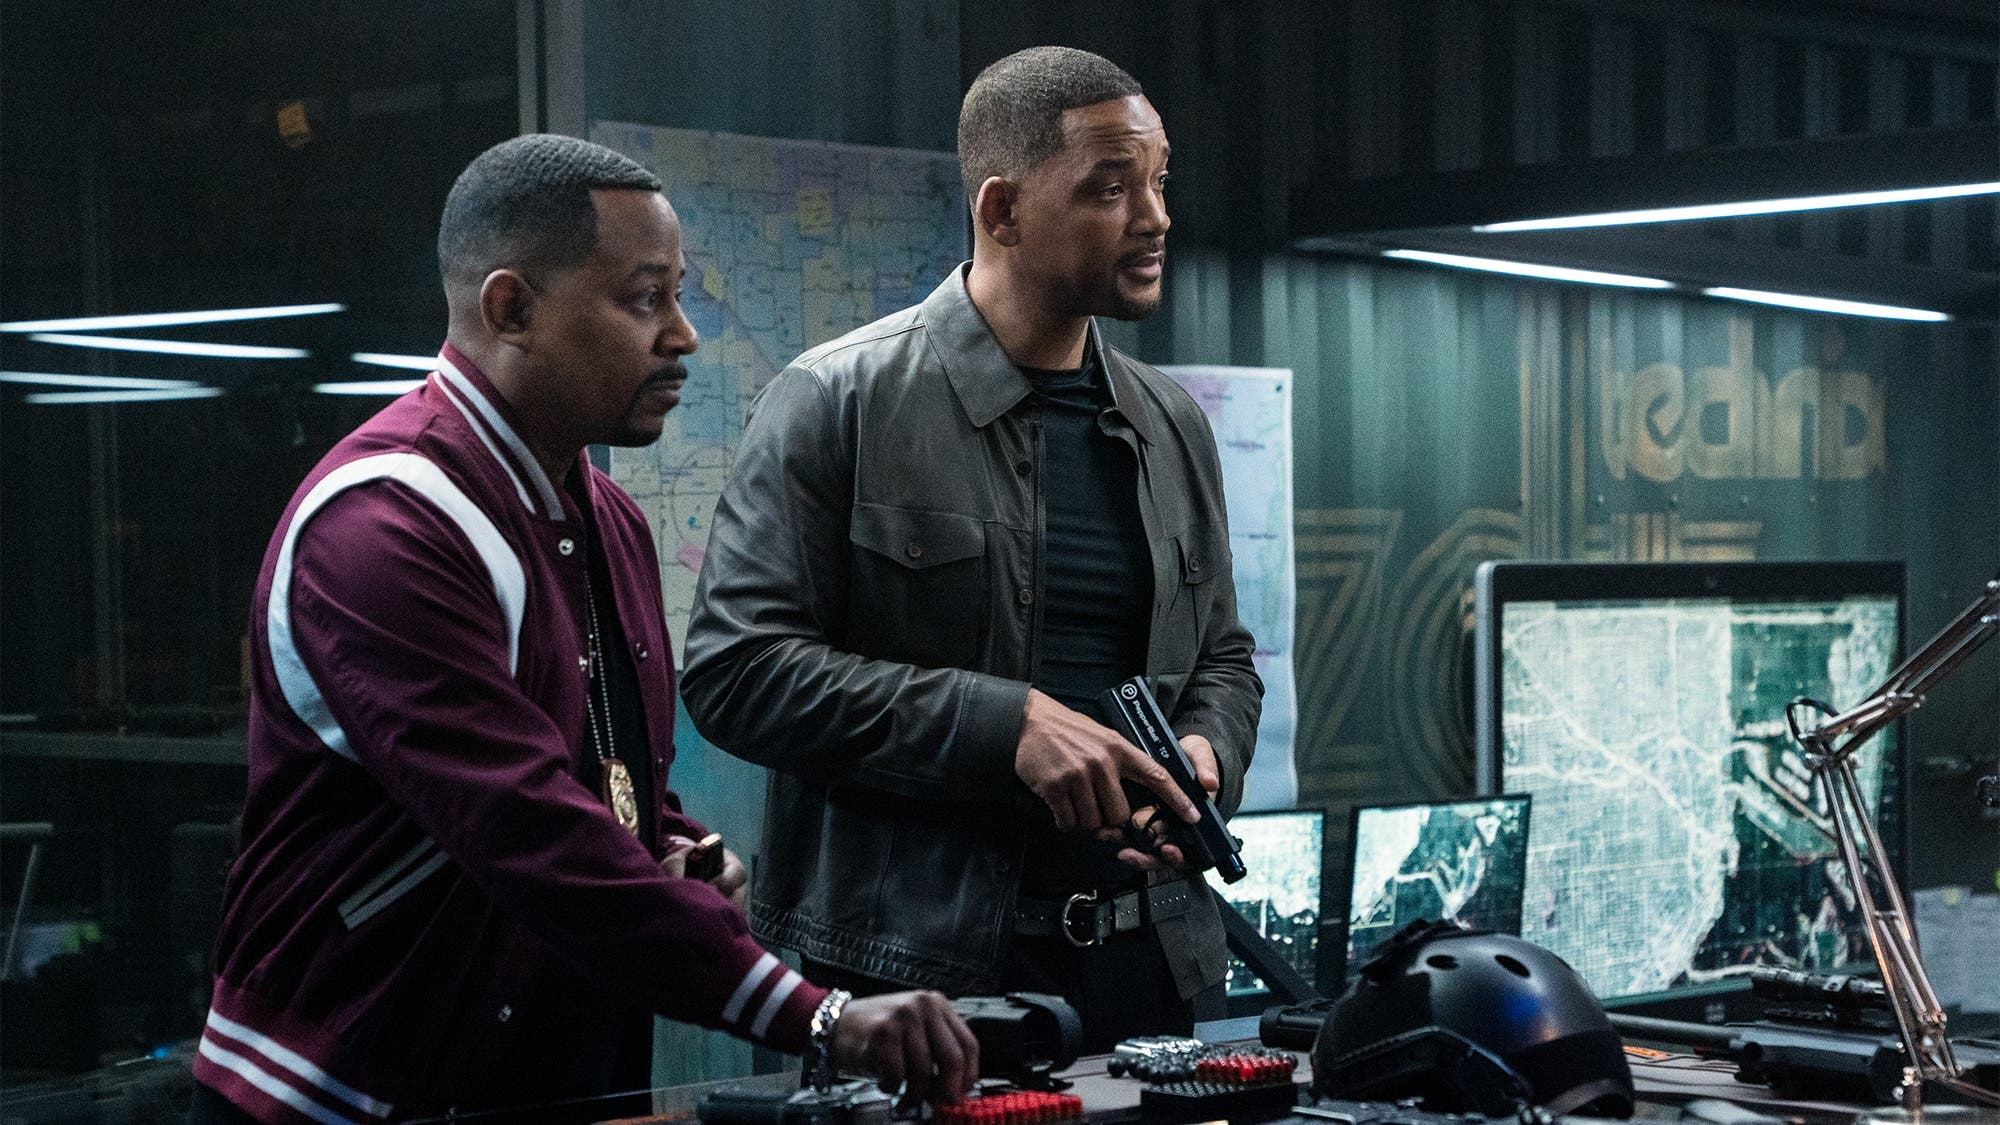 Mike Lowrey (WILL SMITH), Marcus Burnett (MARTIN LAWRENCE) prepping their new non-lethal weapons in Columbia Pictures' BAD BOYS FOR LIFE.